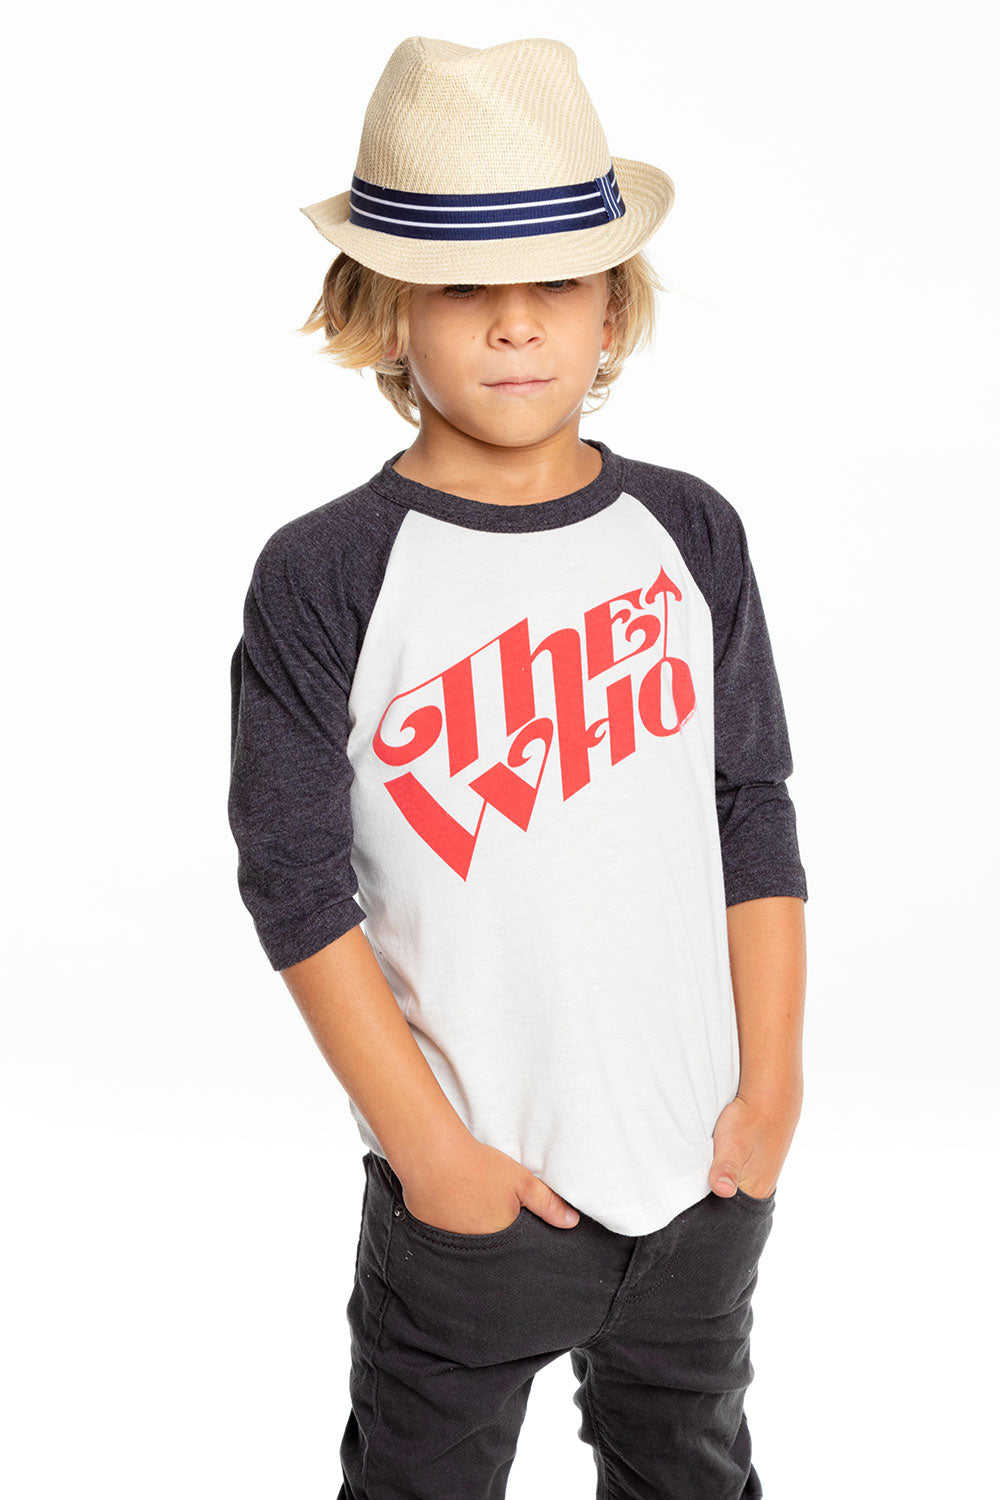 The Who - Retro Logo BOYS - chaserbrand